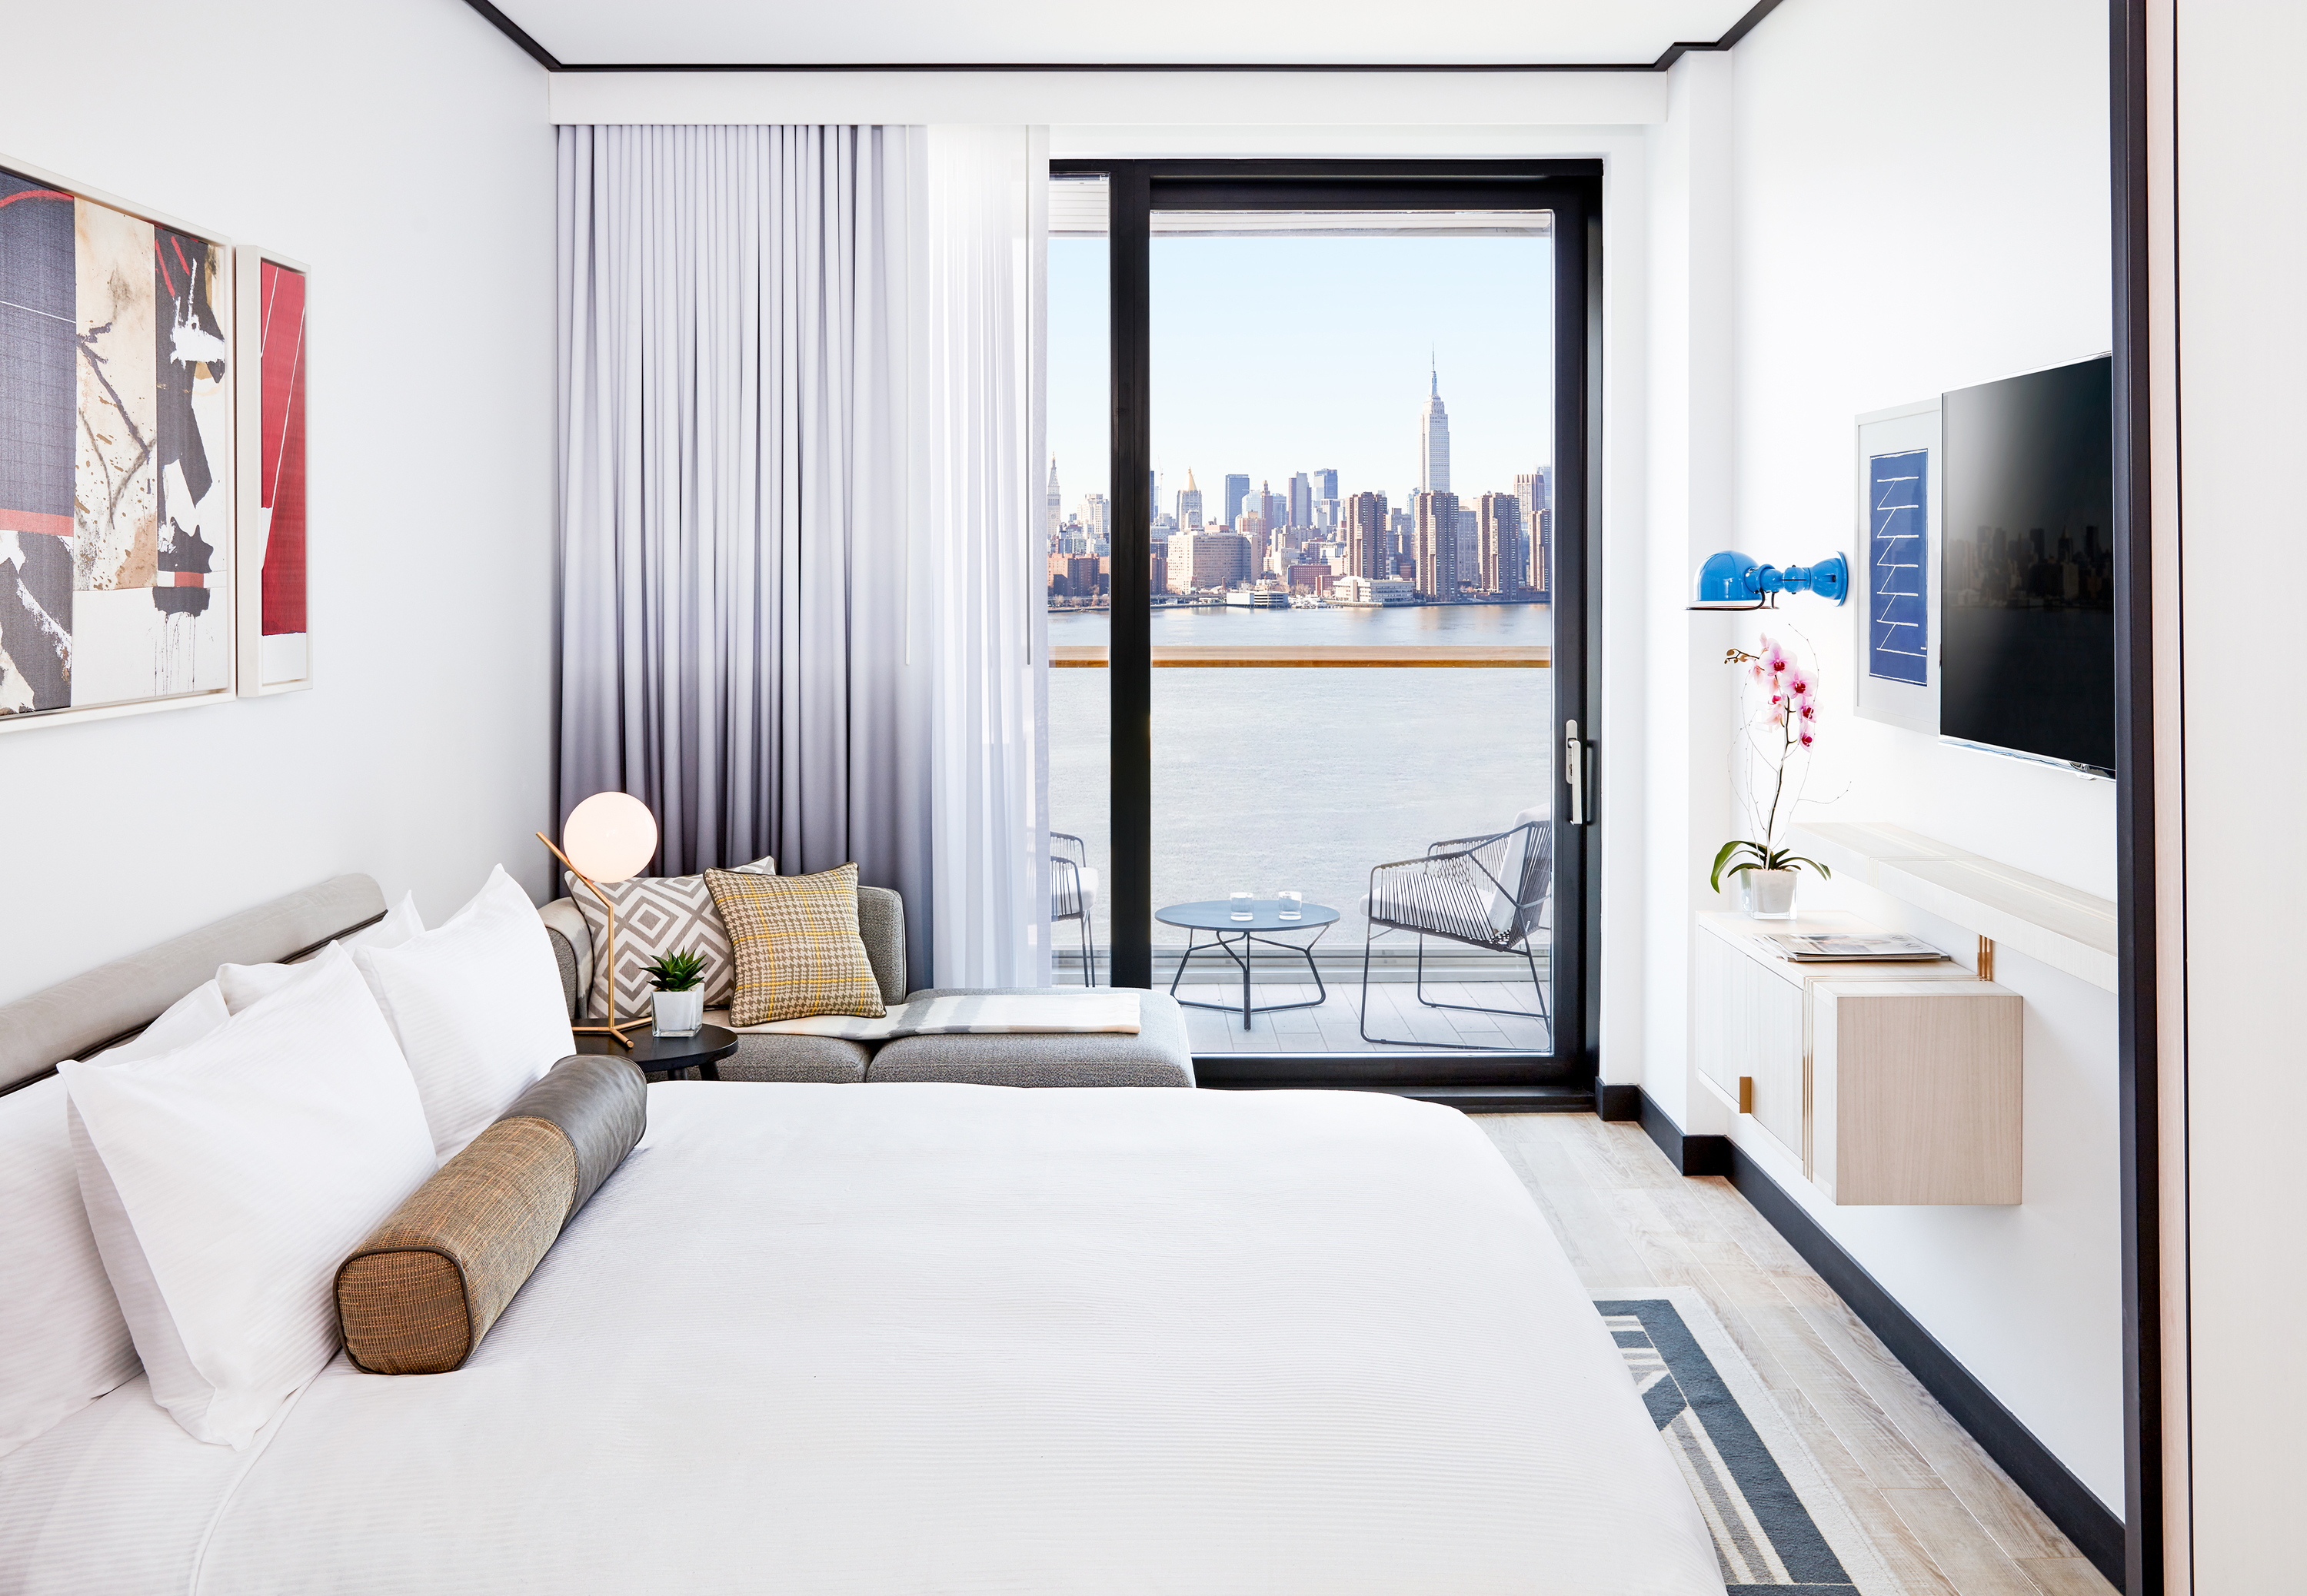 15 Best Hotels With Breathtaking Views in NYC | Time Out | Where to ...